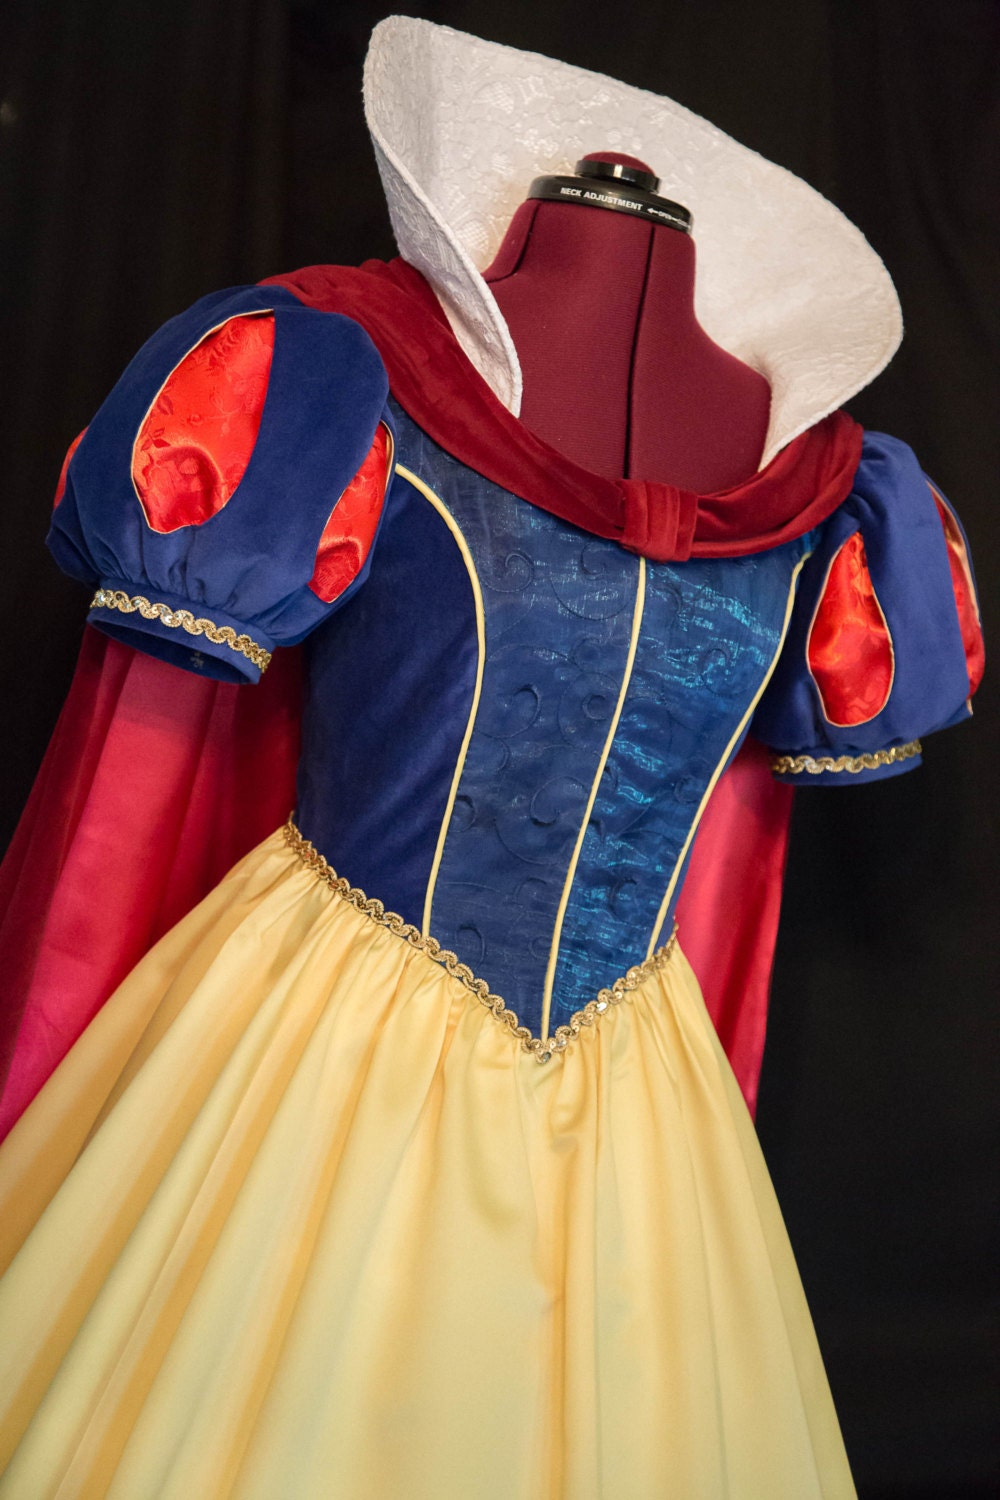 Snow white apron etsy - Exquisite Deluxe Adult Snow White Teardrop Sleeve Gown Cape Bow Costume Custom Size